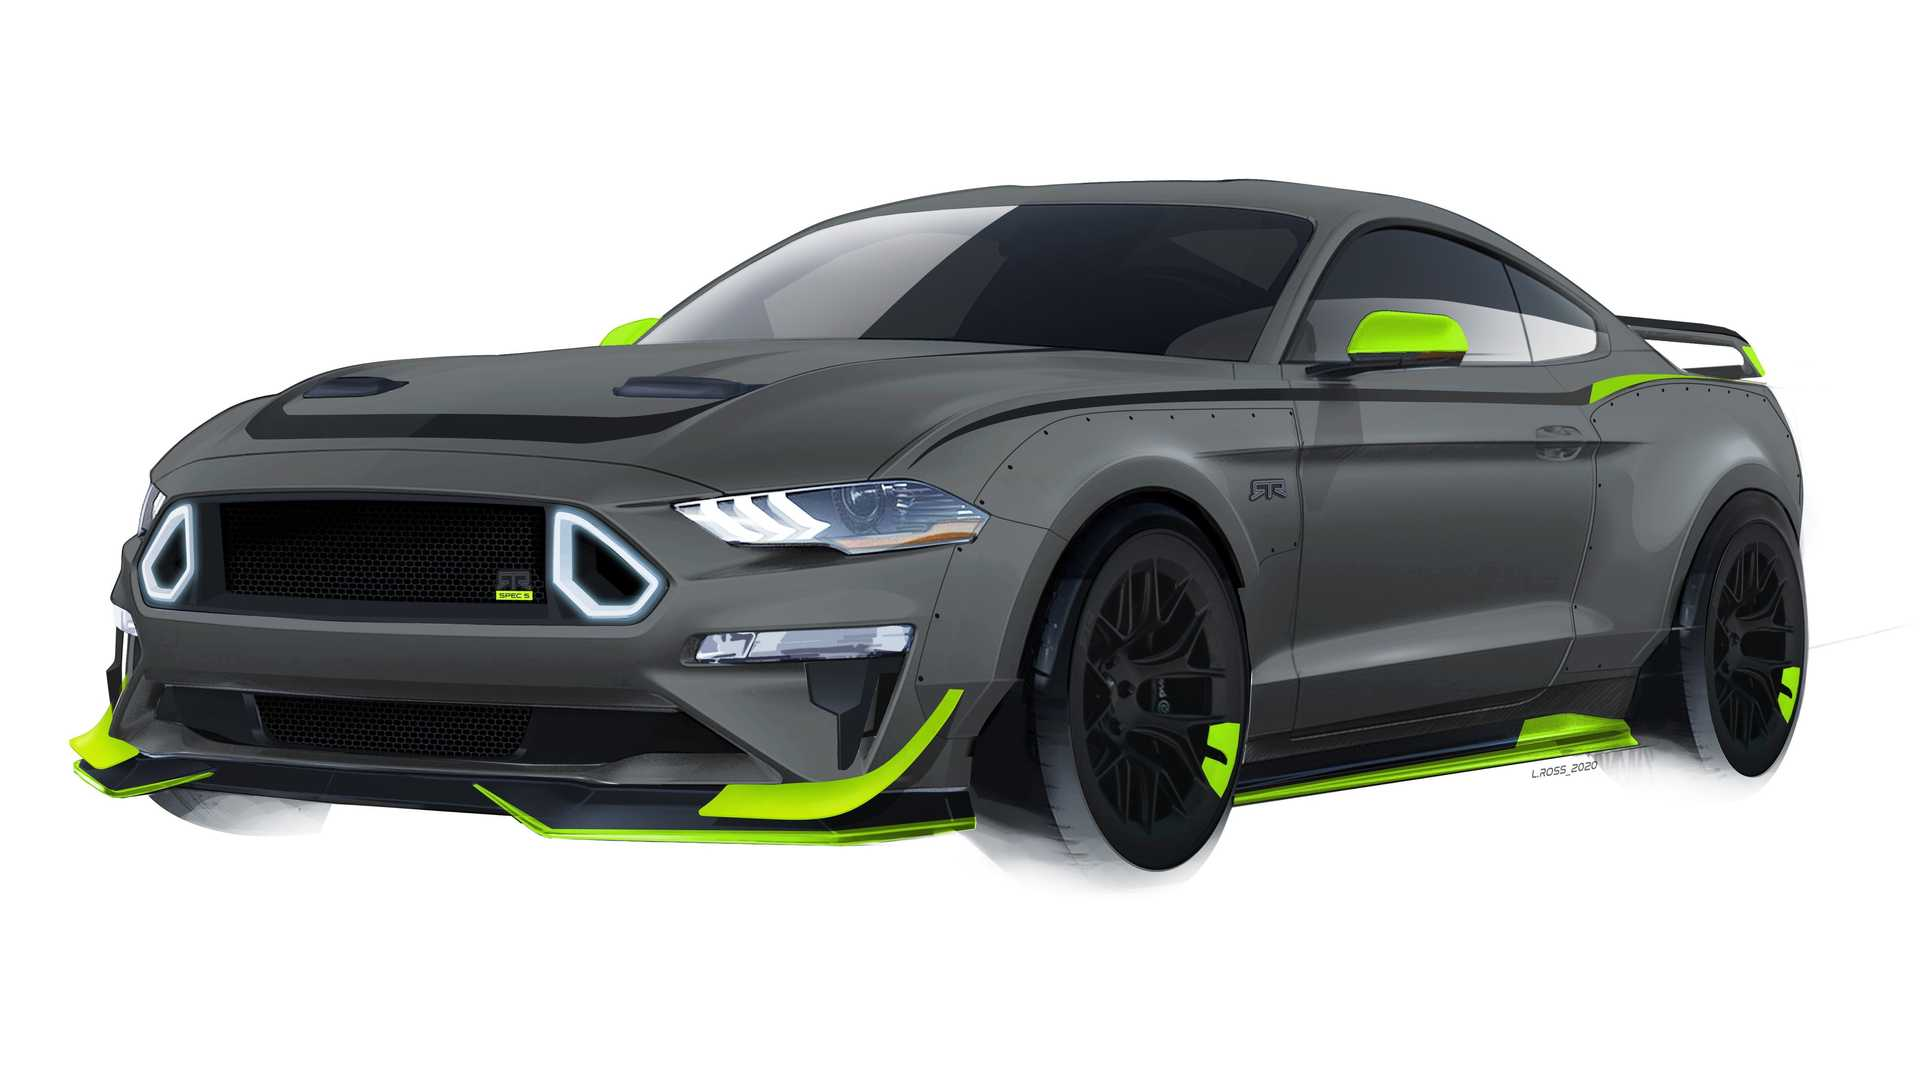 rtr-10th-anniversary-mustang-spec-5-5